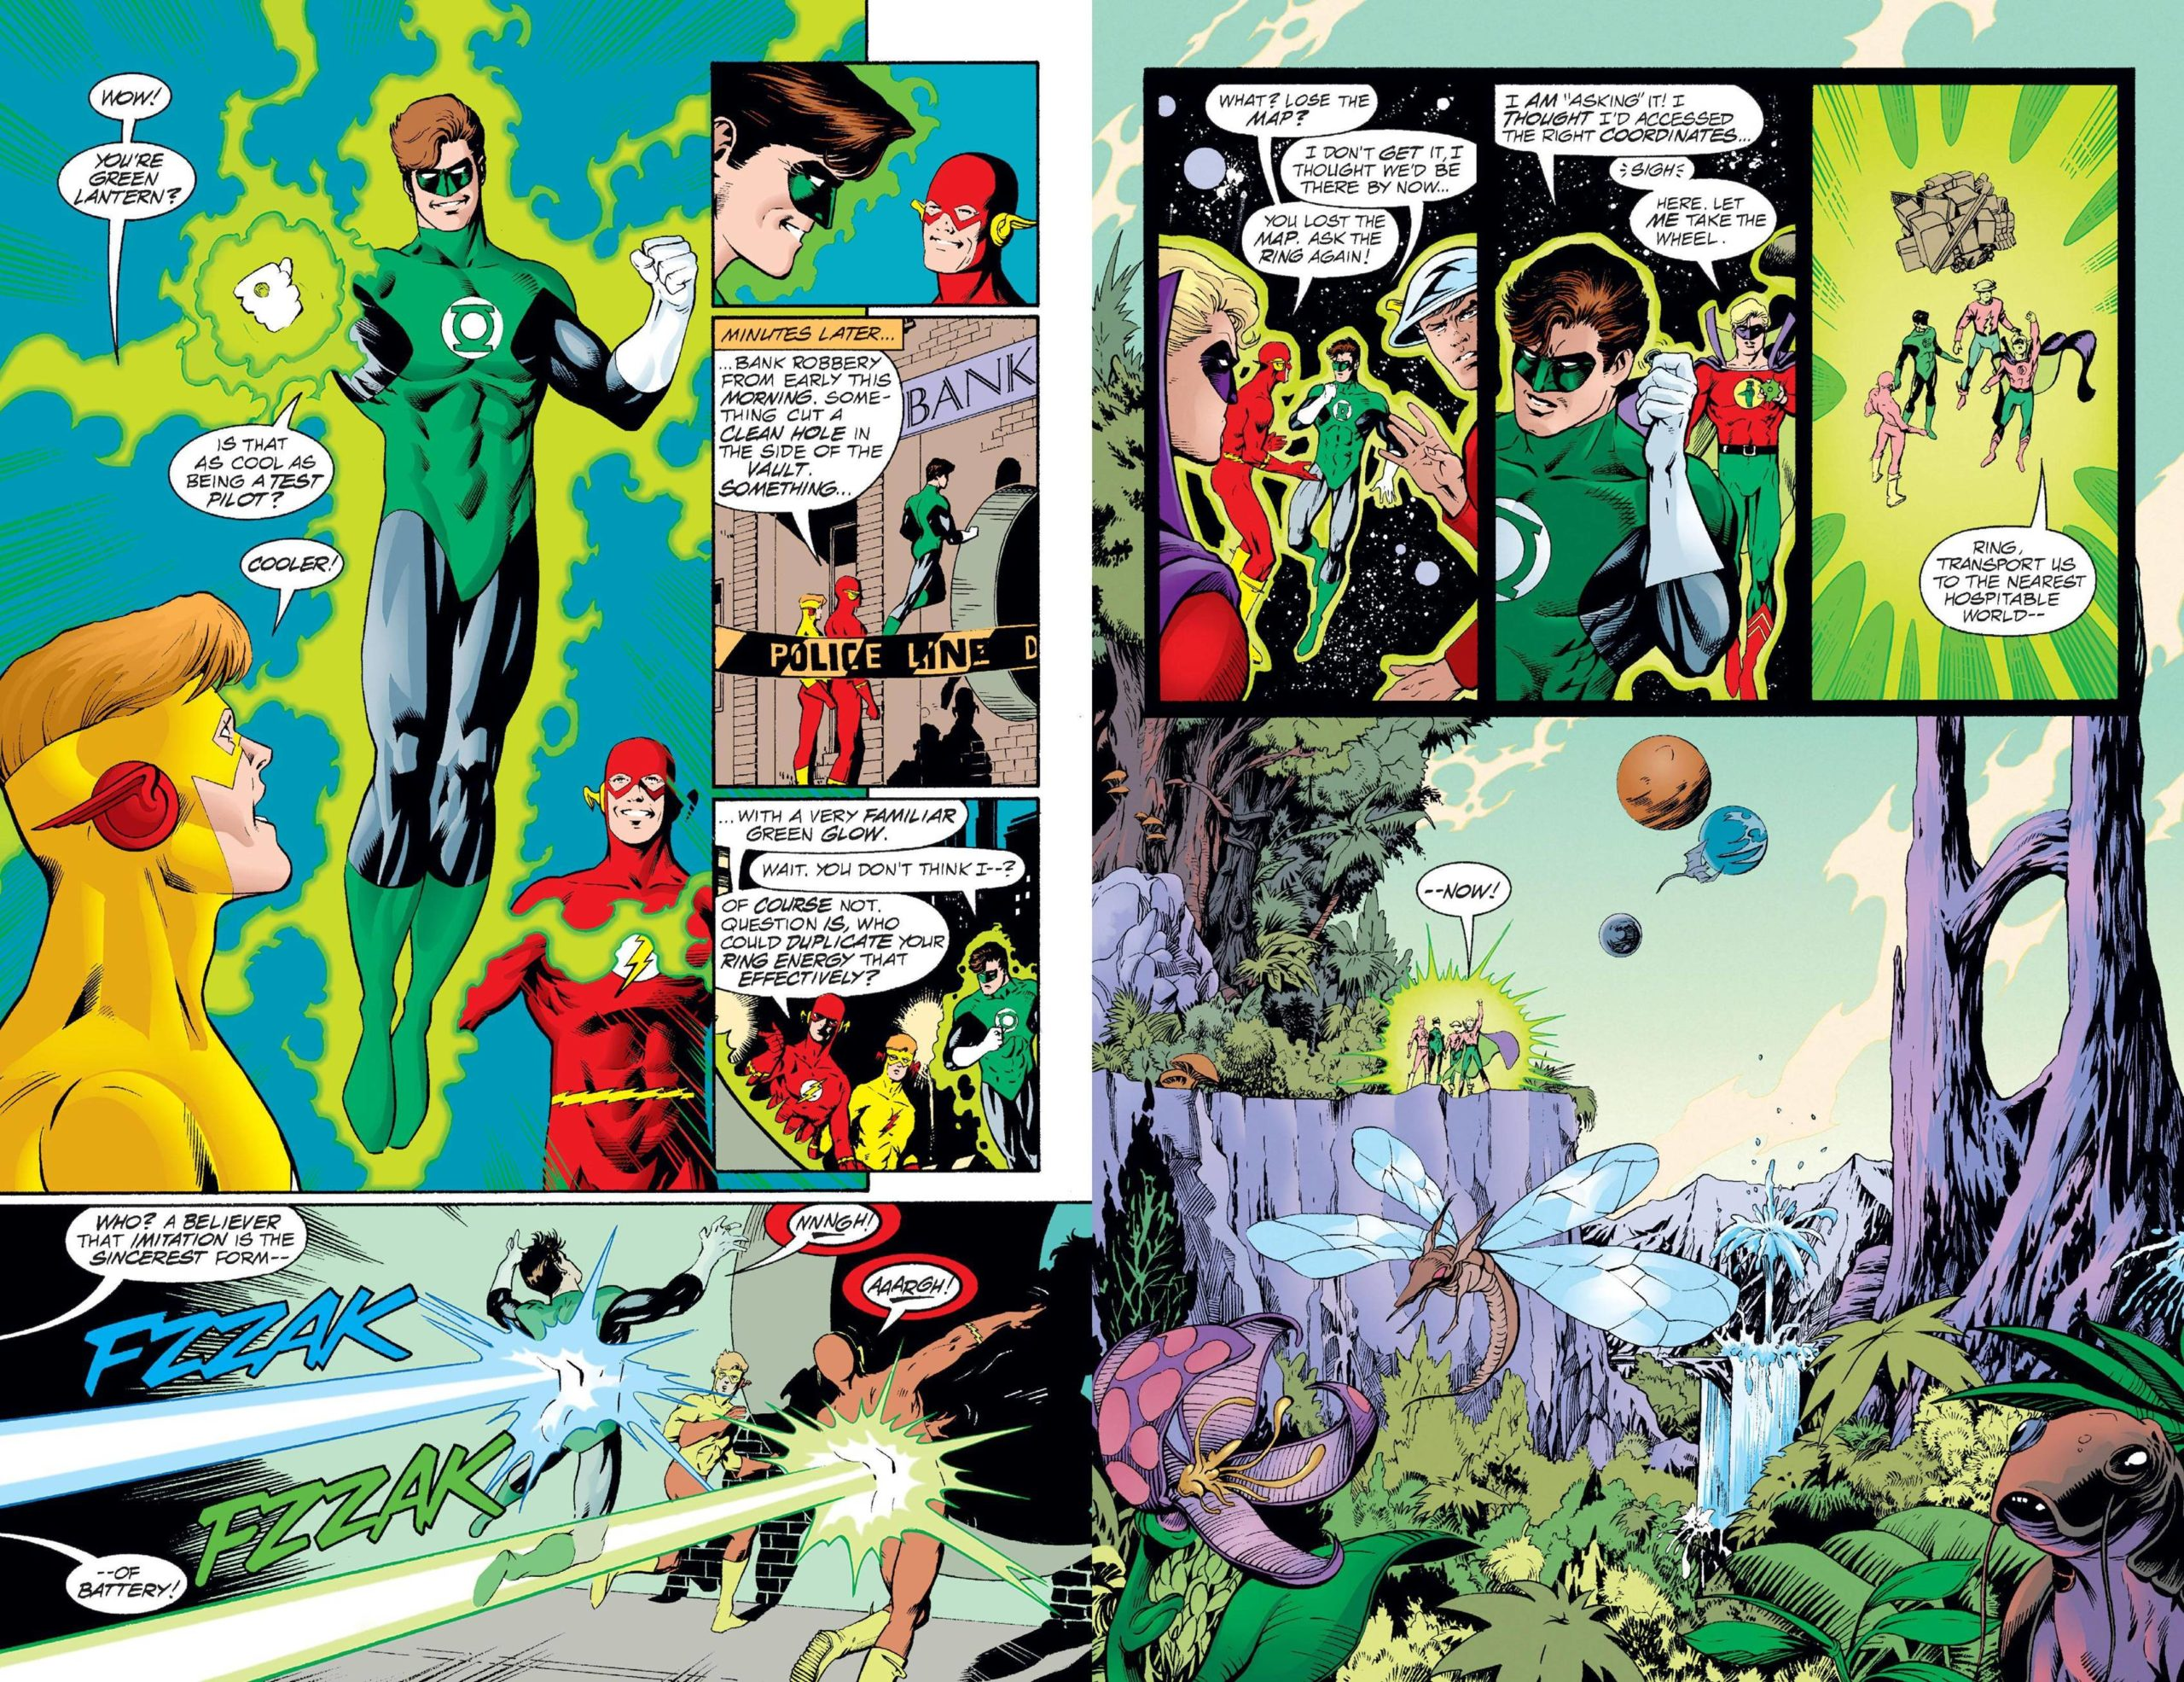 Flash & Green Lantern The Brave & The Bold review